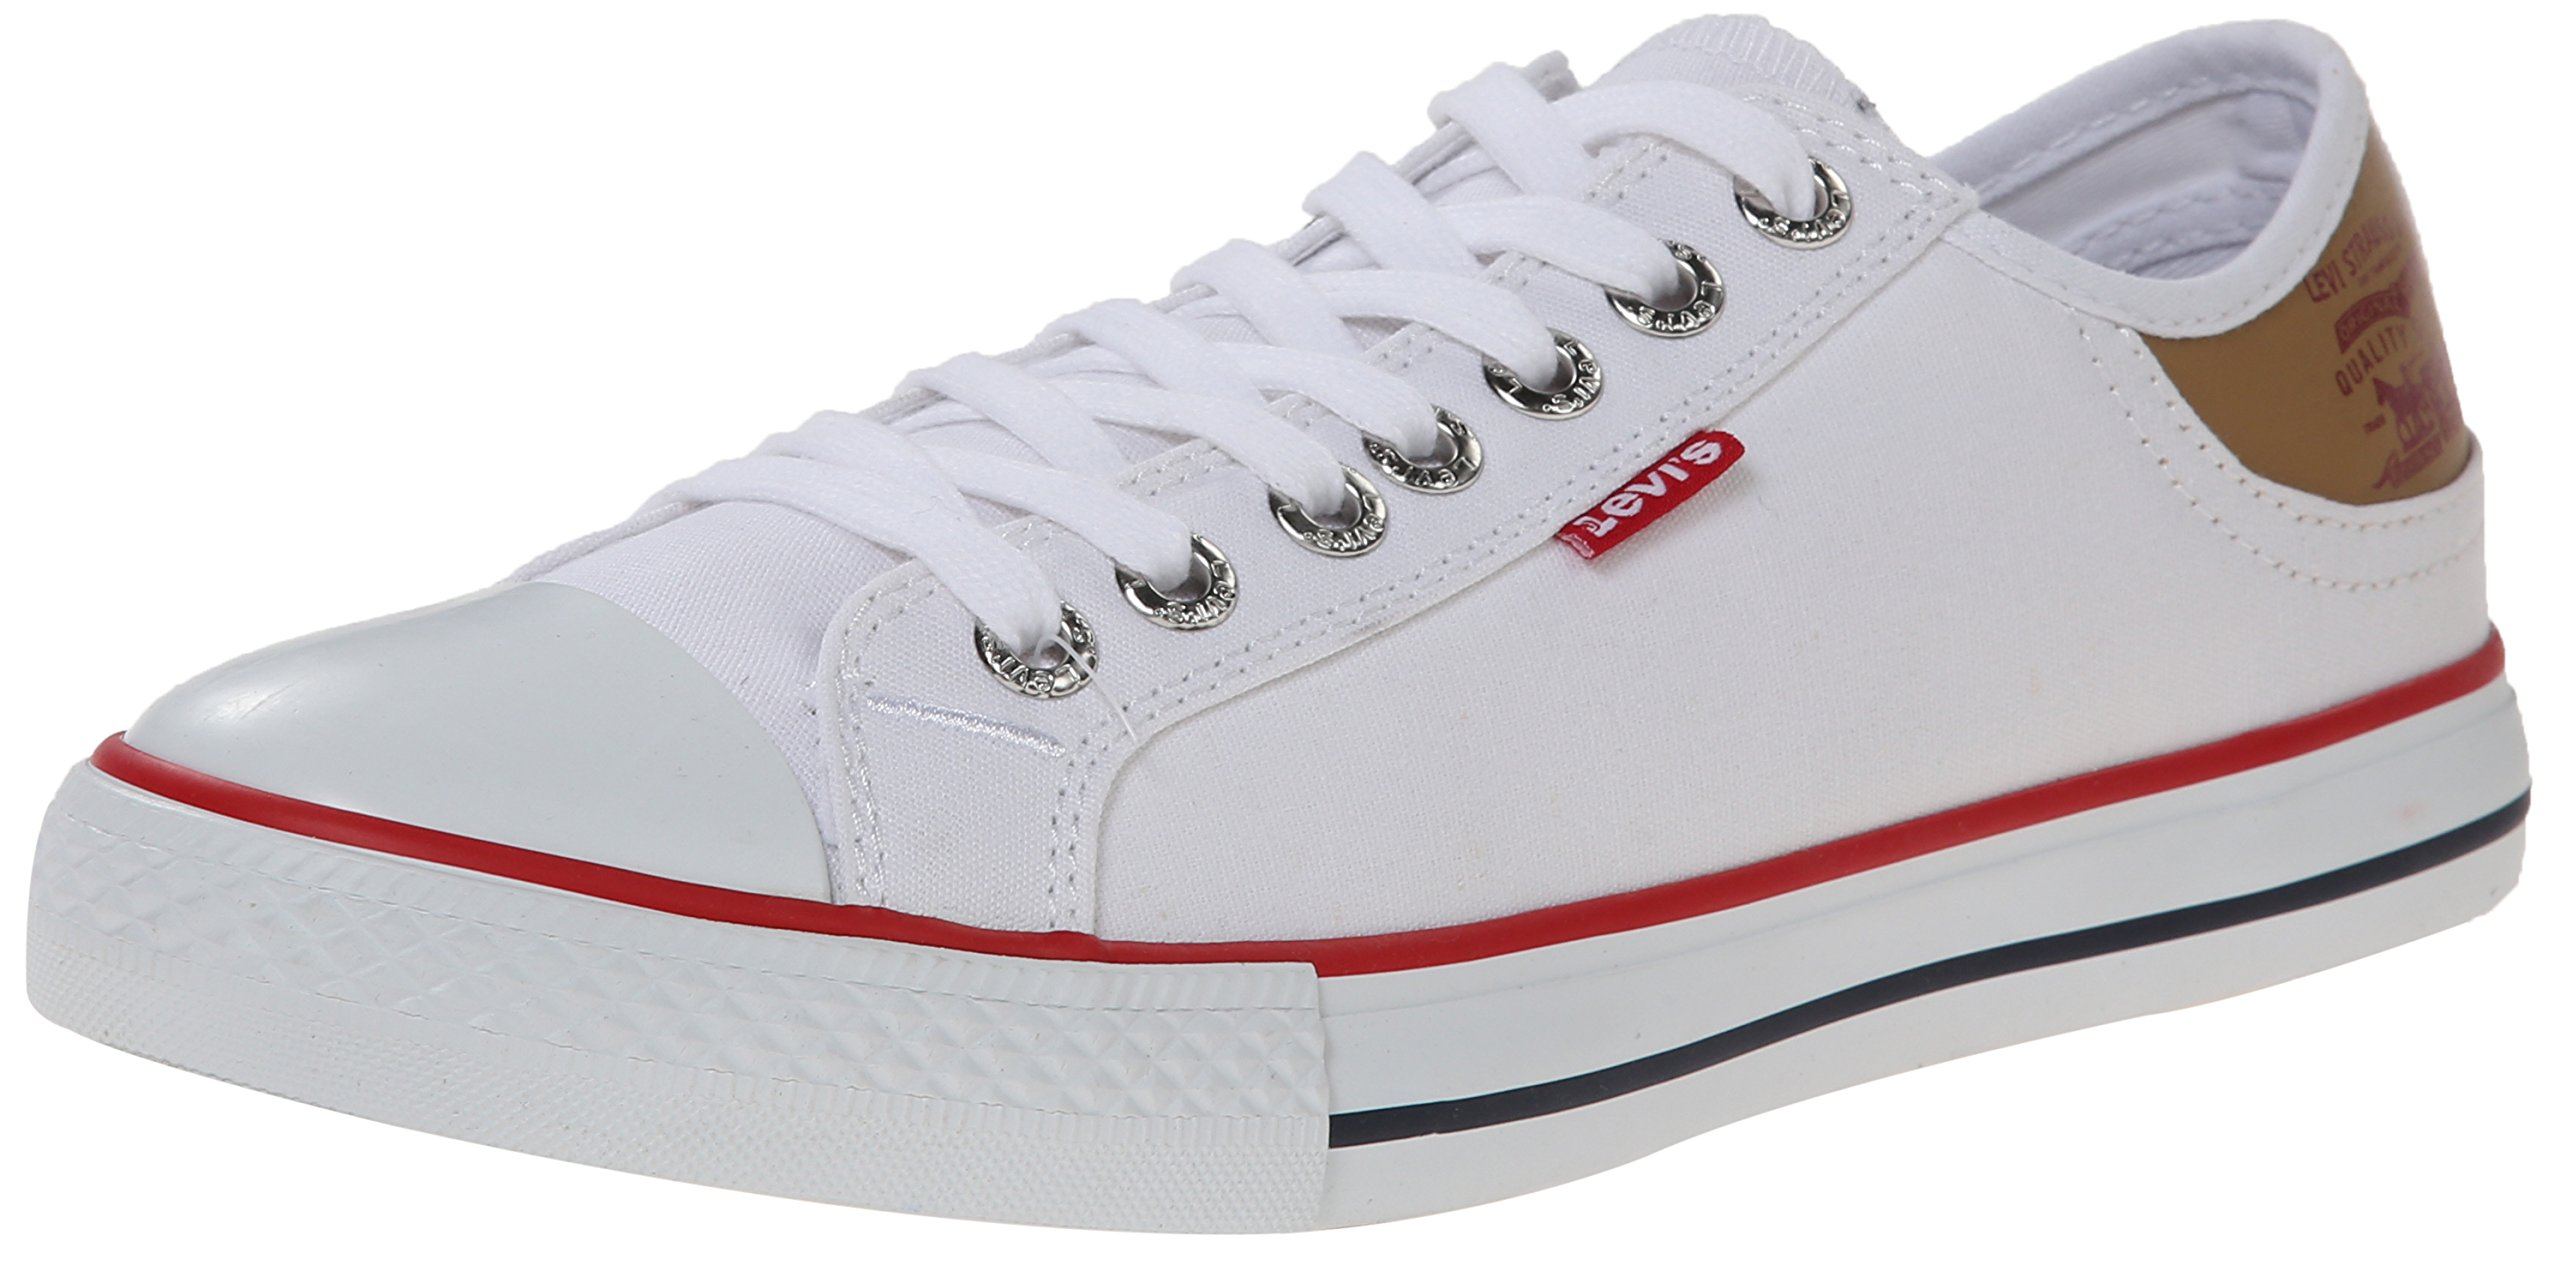 Levis Black And White Shoes